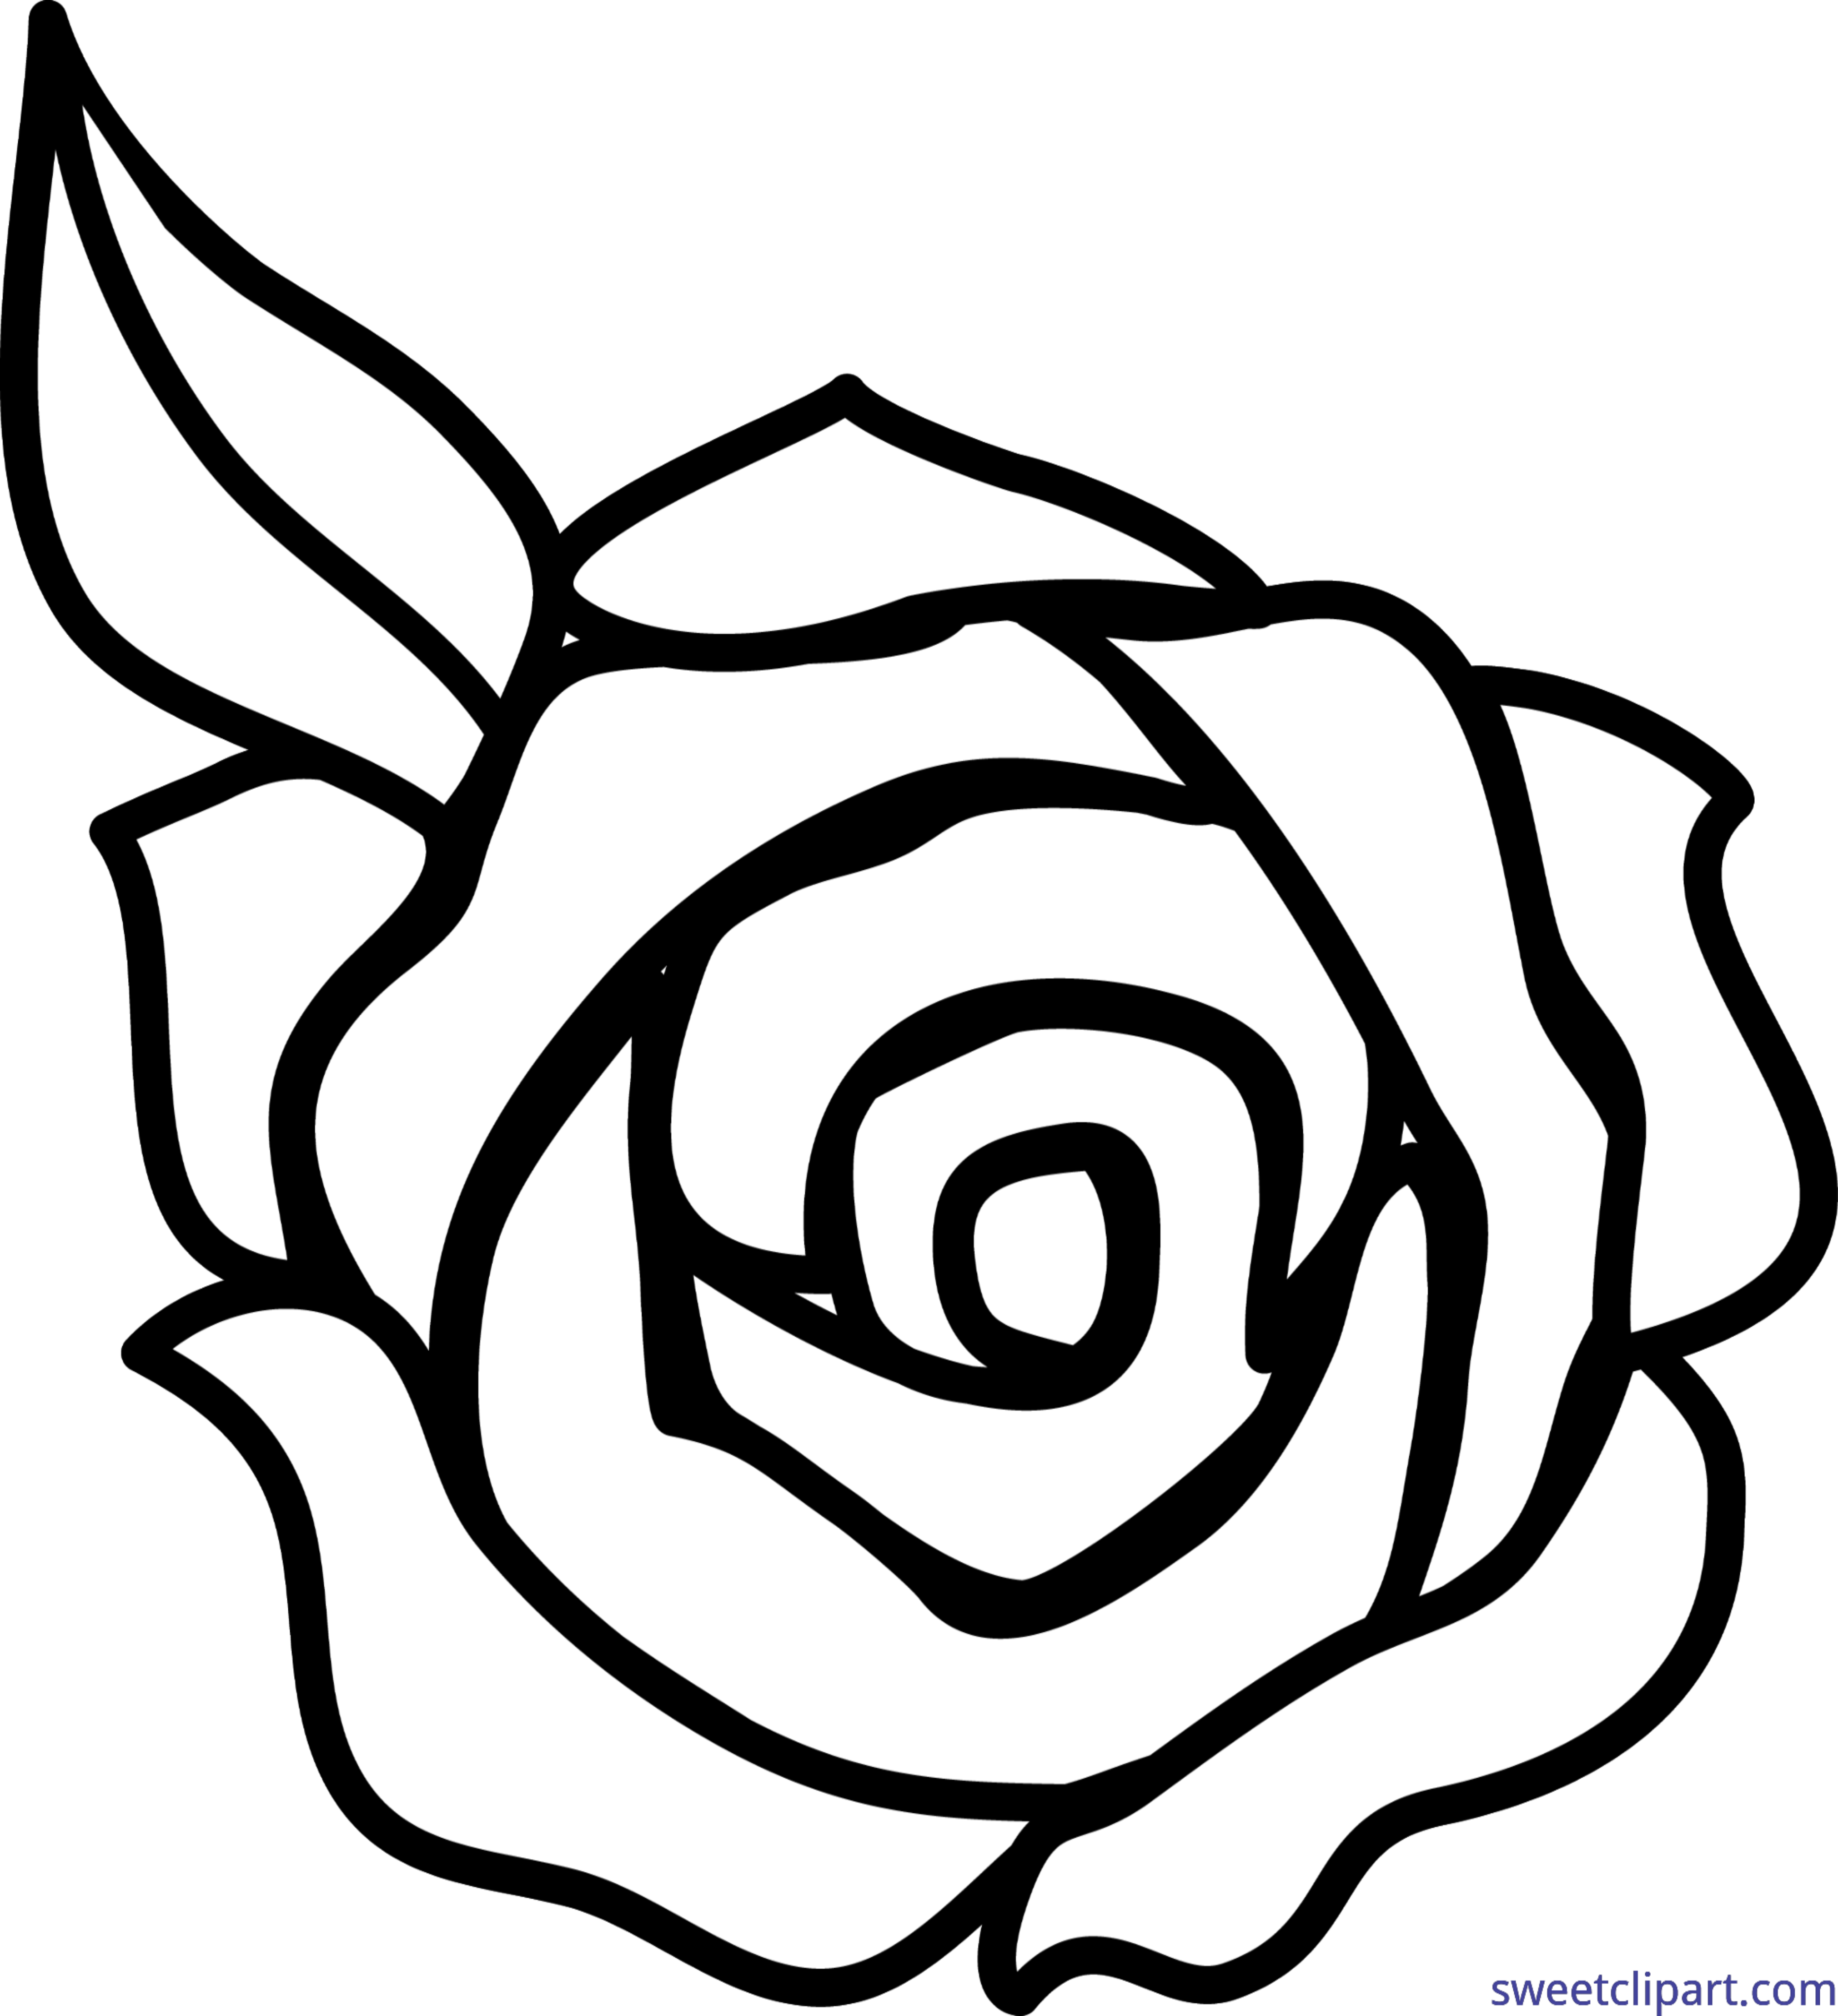 Clipart rose black and white. Lineart clip art sweet